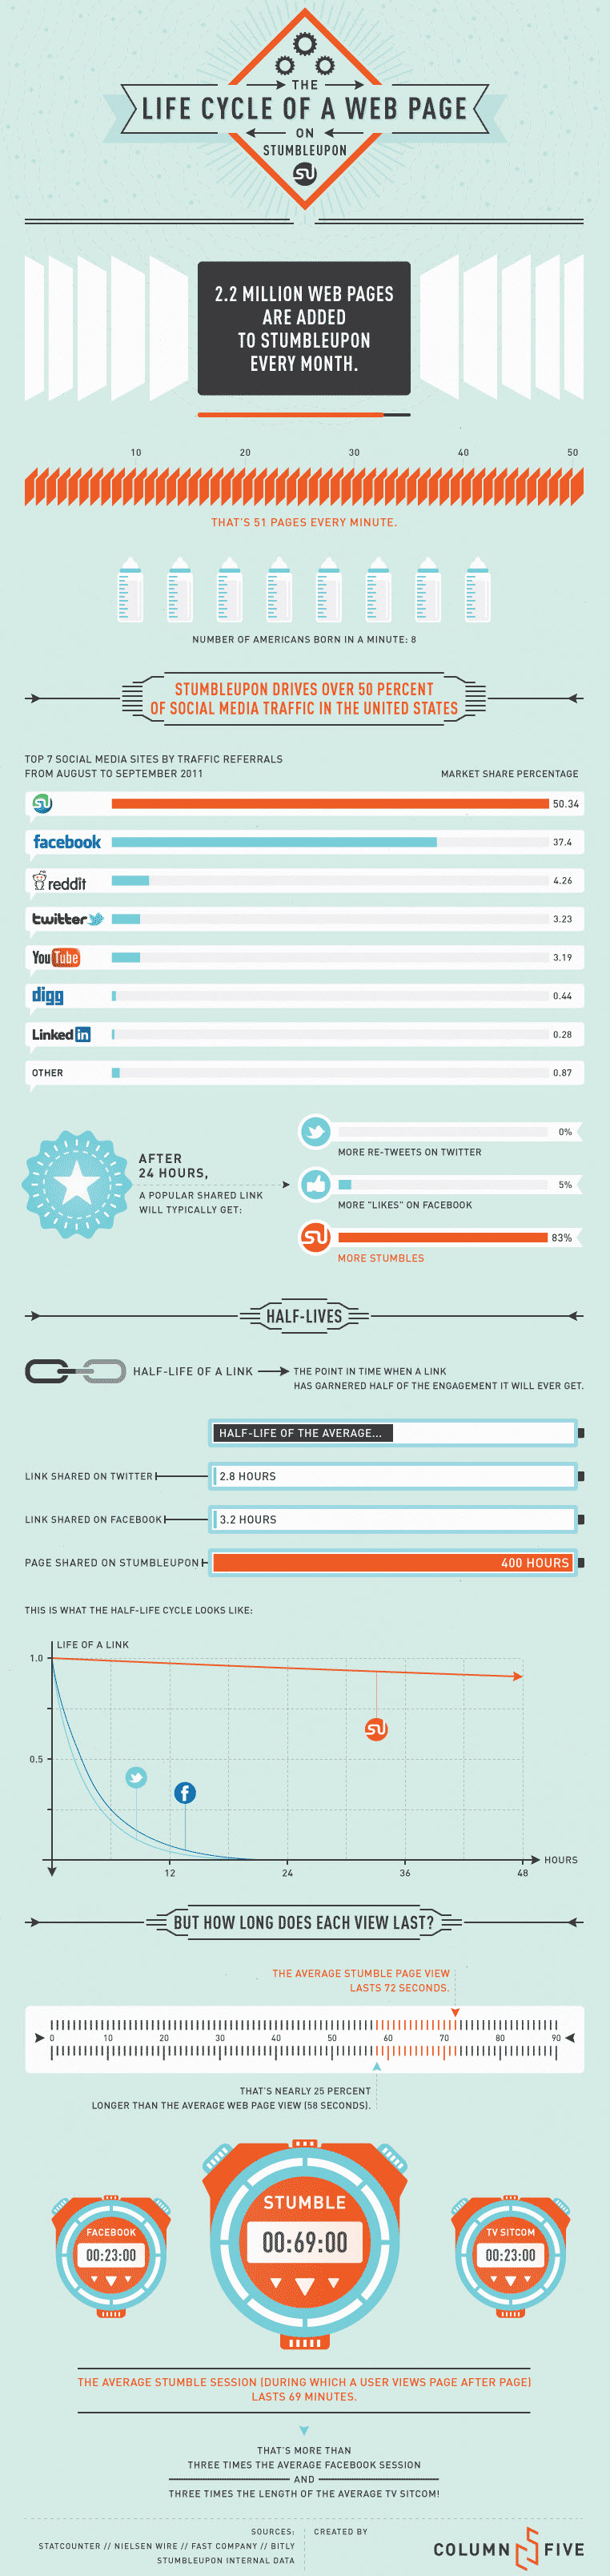 StumbleUpon Drives More Traffic Than Facebook Or Twitter – Plus Infographic image StumbleUpon Social Media Infographic